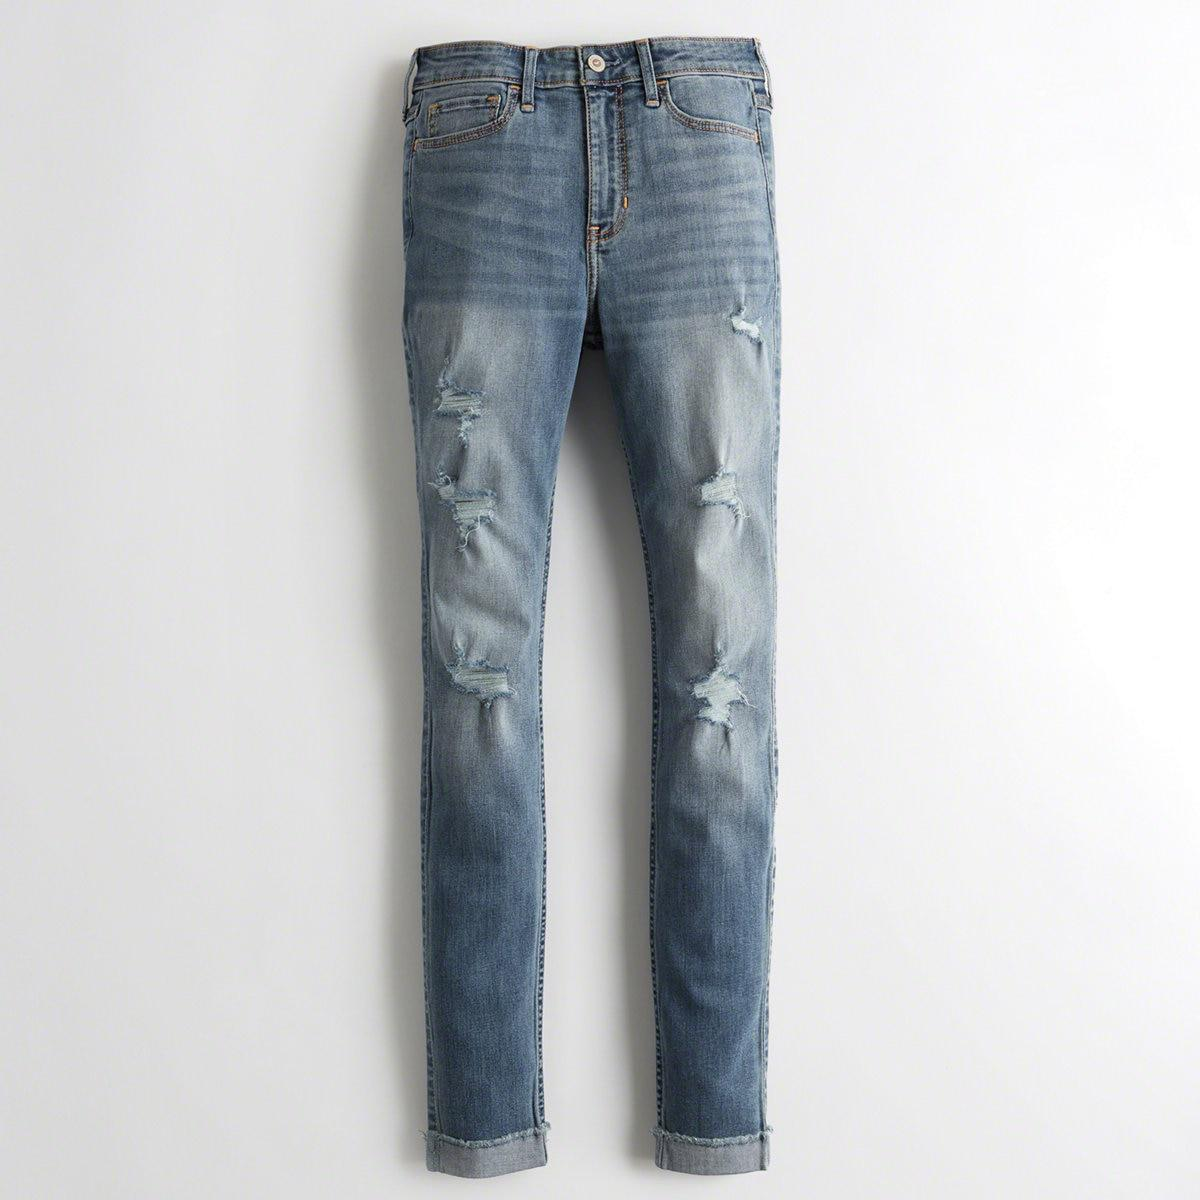 bddf05d6d1564 Hollister. Women s Blue Girls Classic Stretch High-rise Super Skinny Jeans  From Hollister